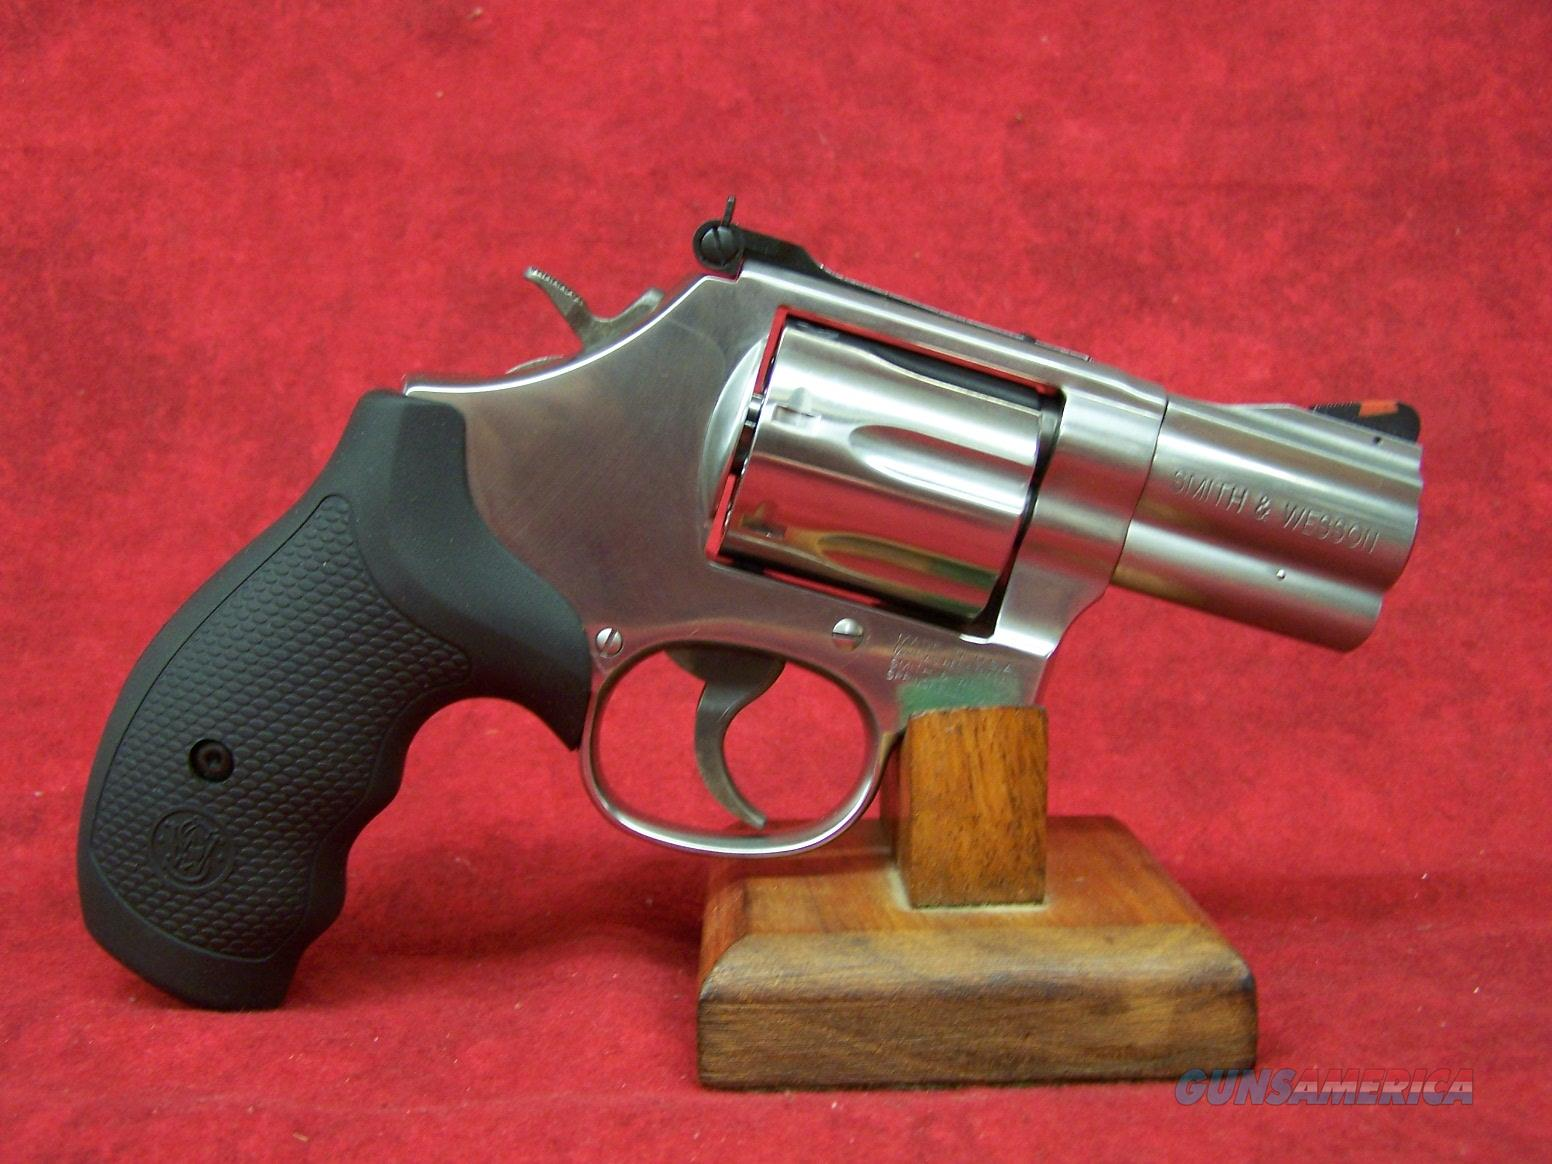 "SMITH & WESSON Model 686 Plus .357 Magnum/.38 Smith & Wesson Special +P 2.5"" (164192)  Guns > Pistols > Smith & Wesson Revolvers > Full Frame Revolver"